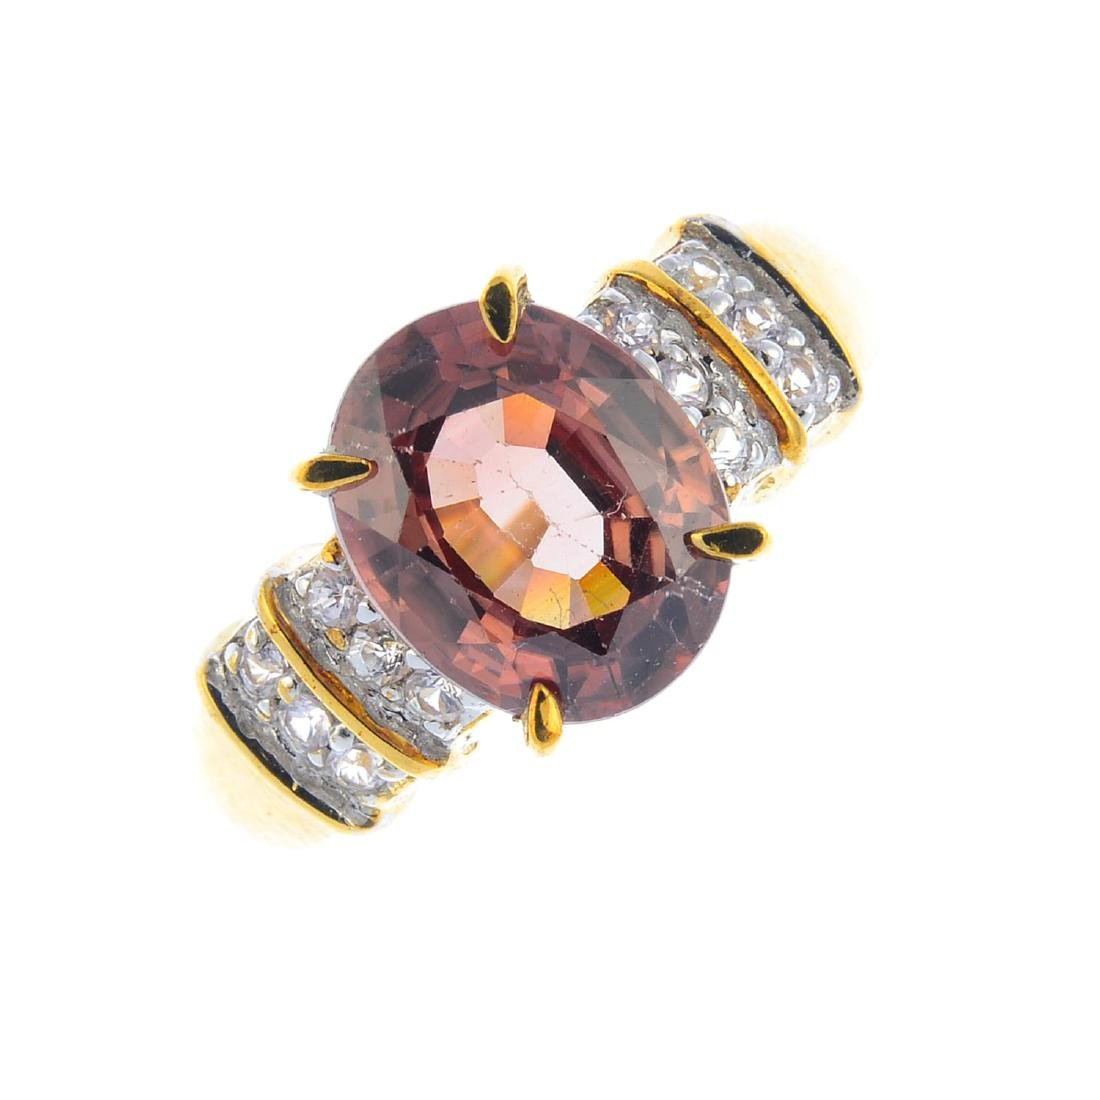 A 9ct gold zircon and diamond ring. The oval-shape